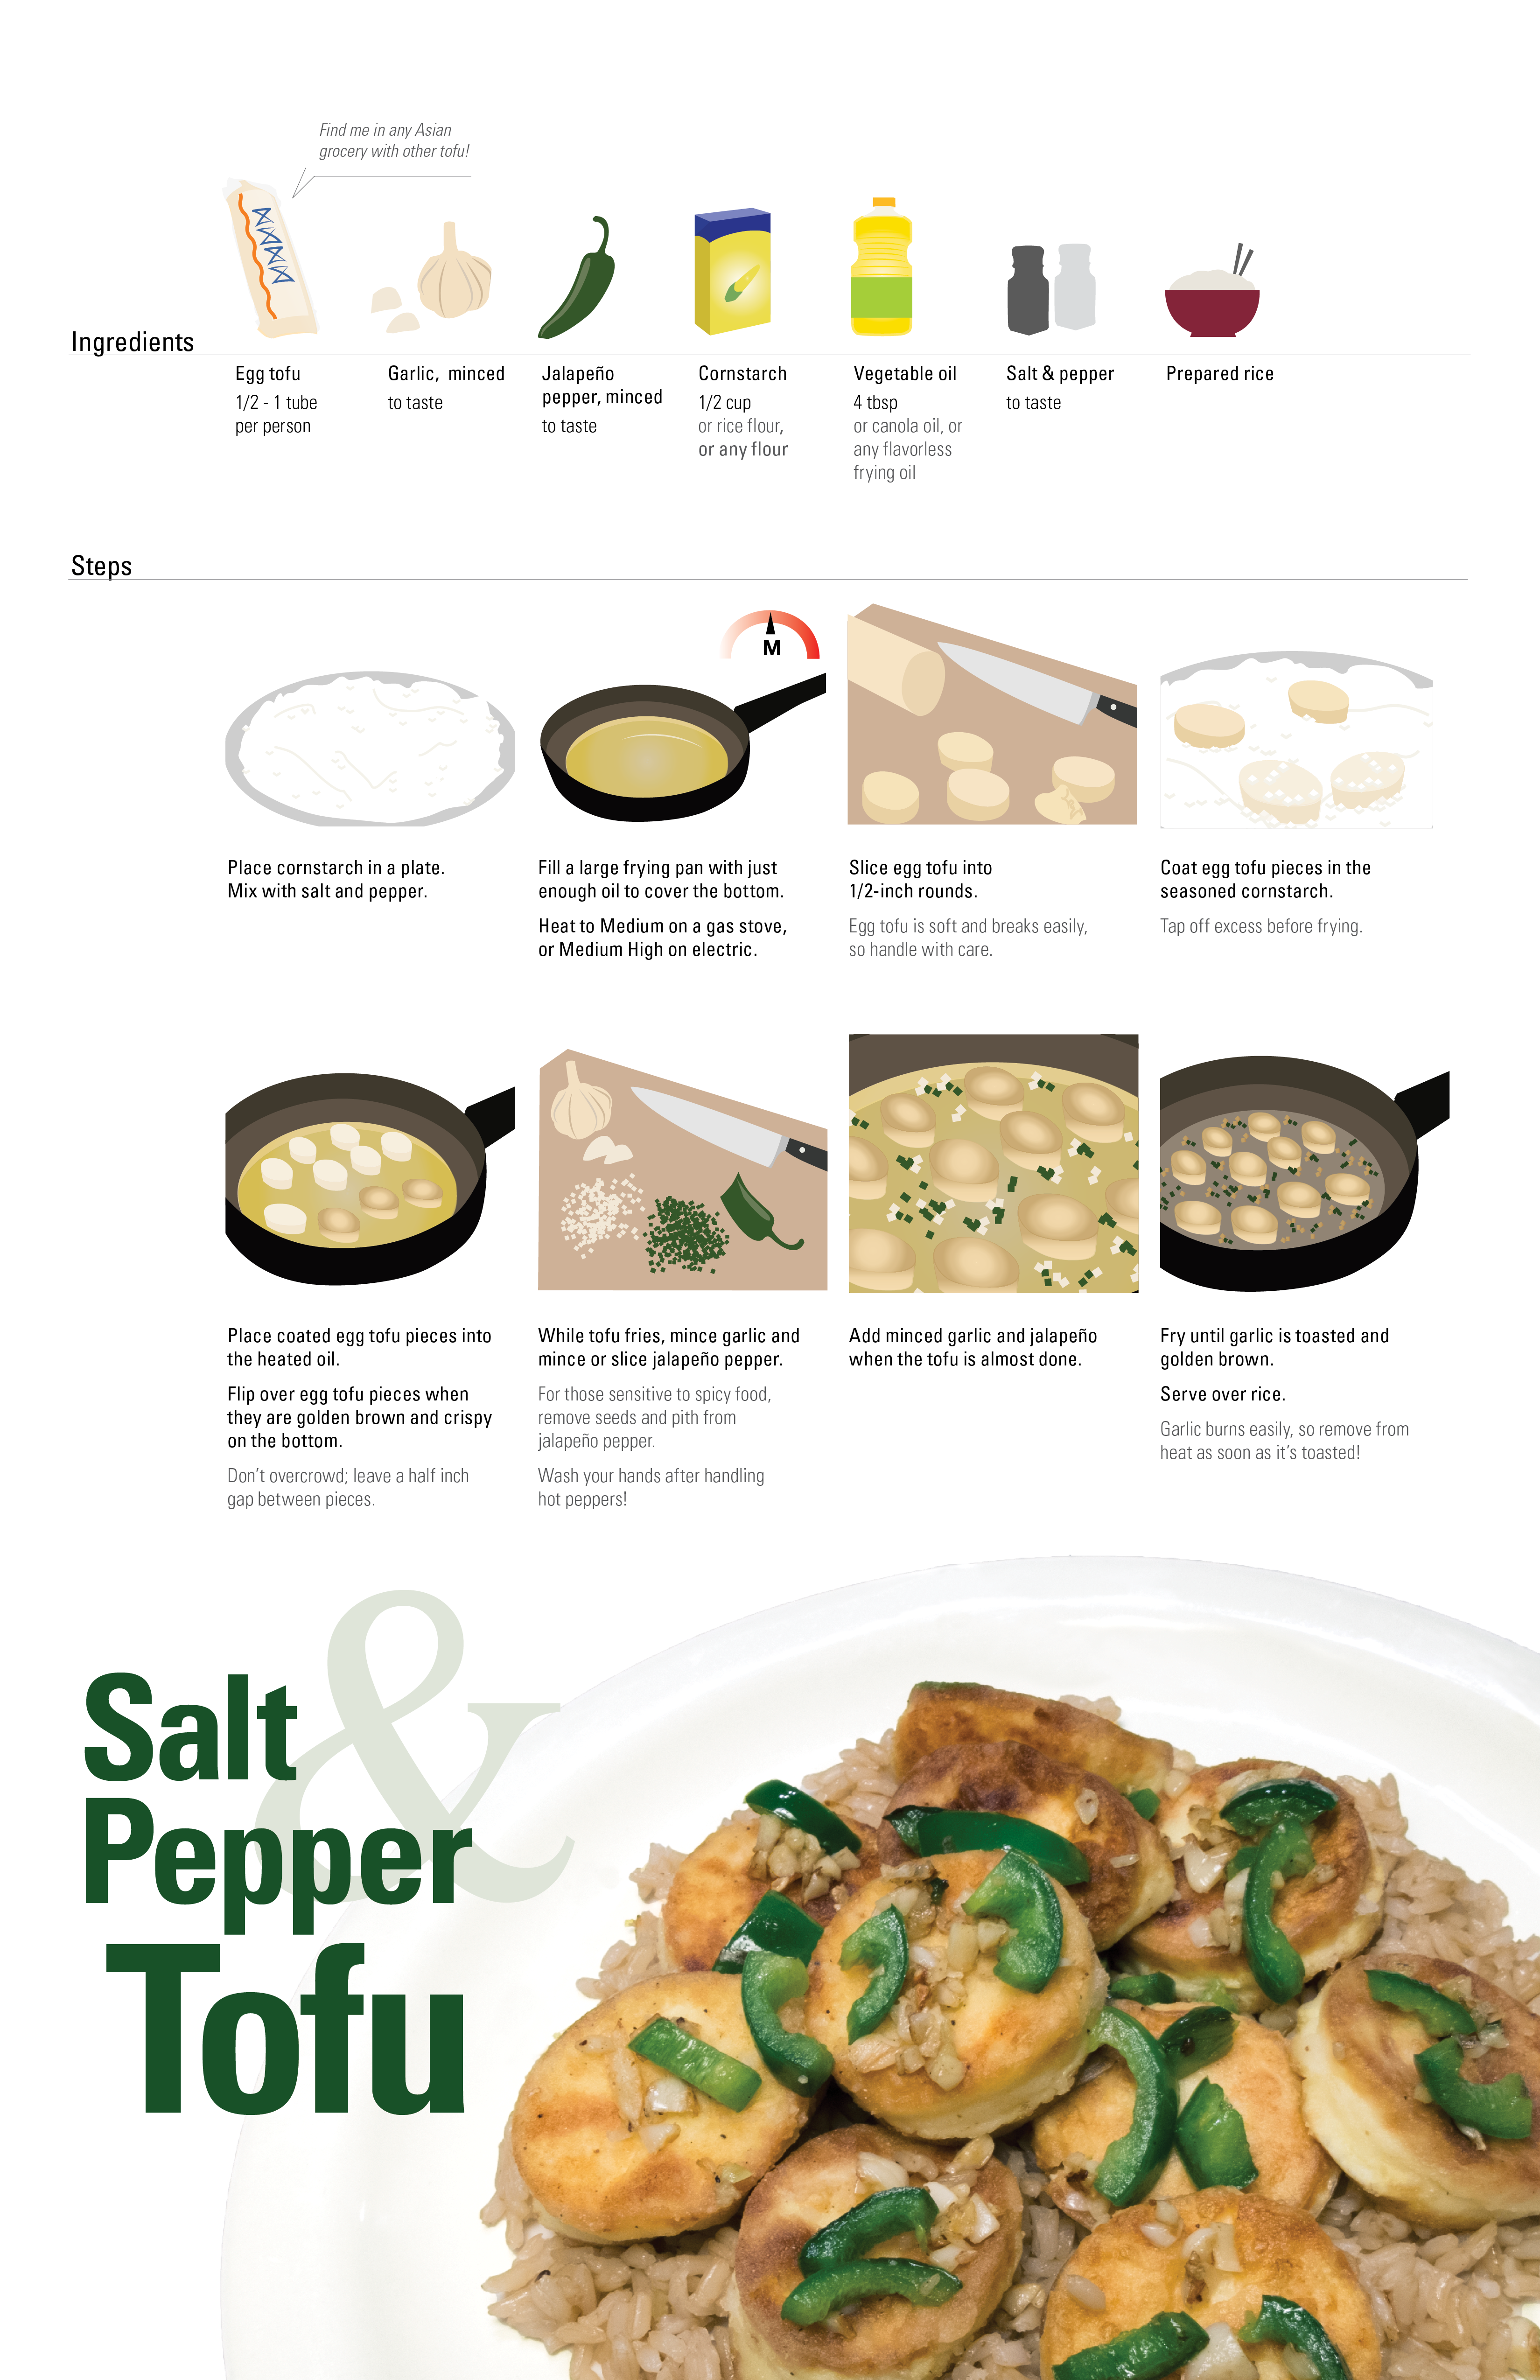 A visual recipe for Salt & Pepper Tofu as an example of communication design.